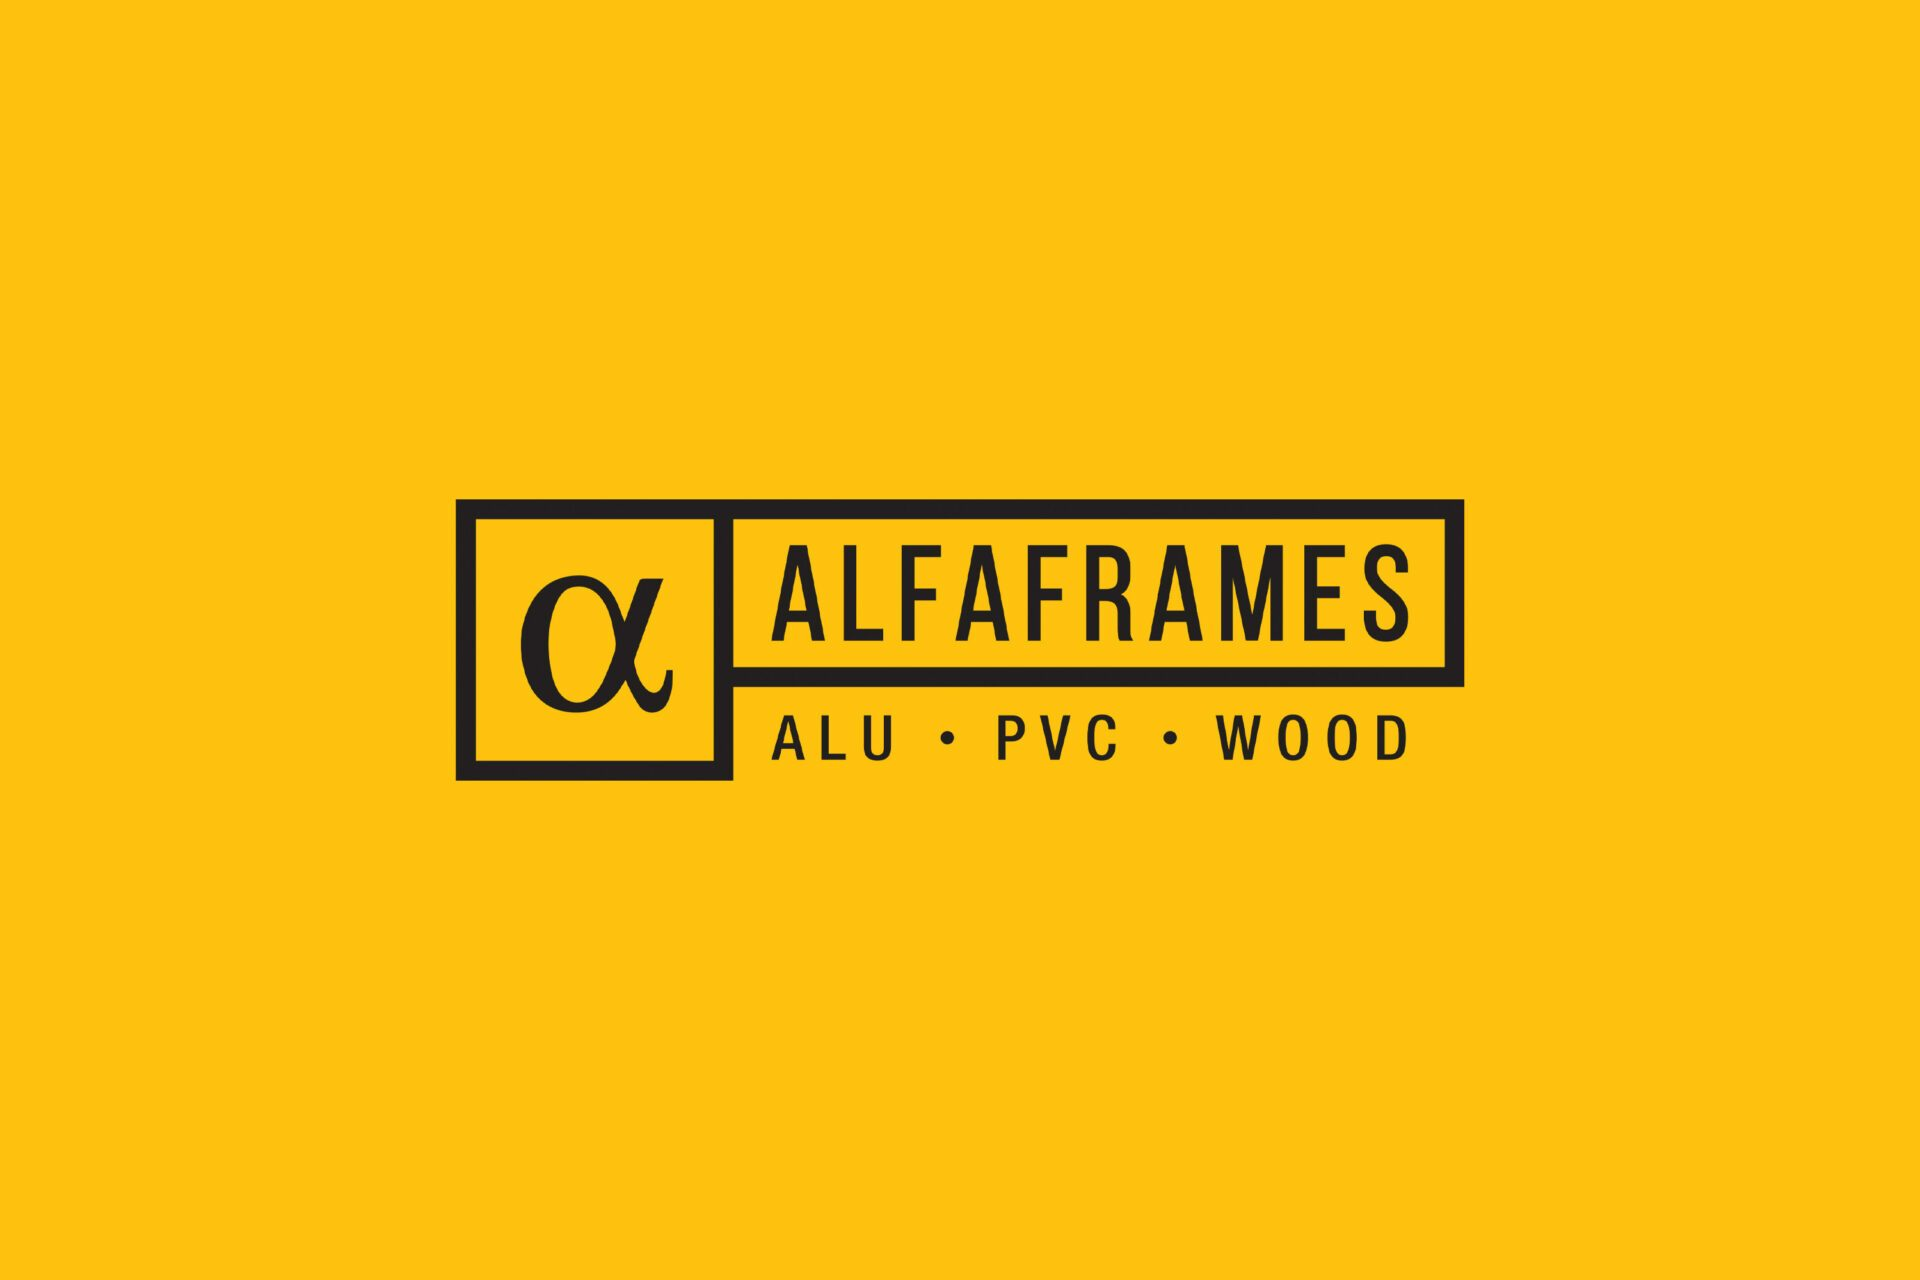 Picture Alfaframes Brand Identity